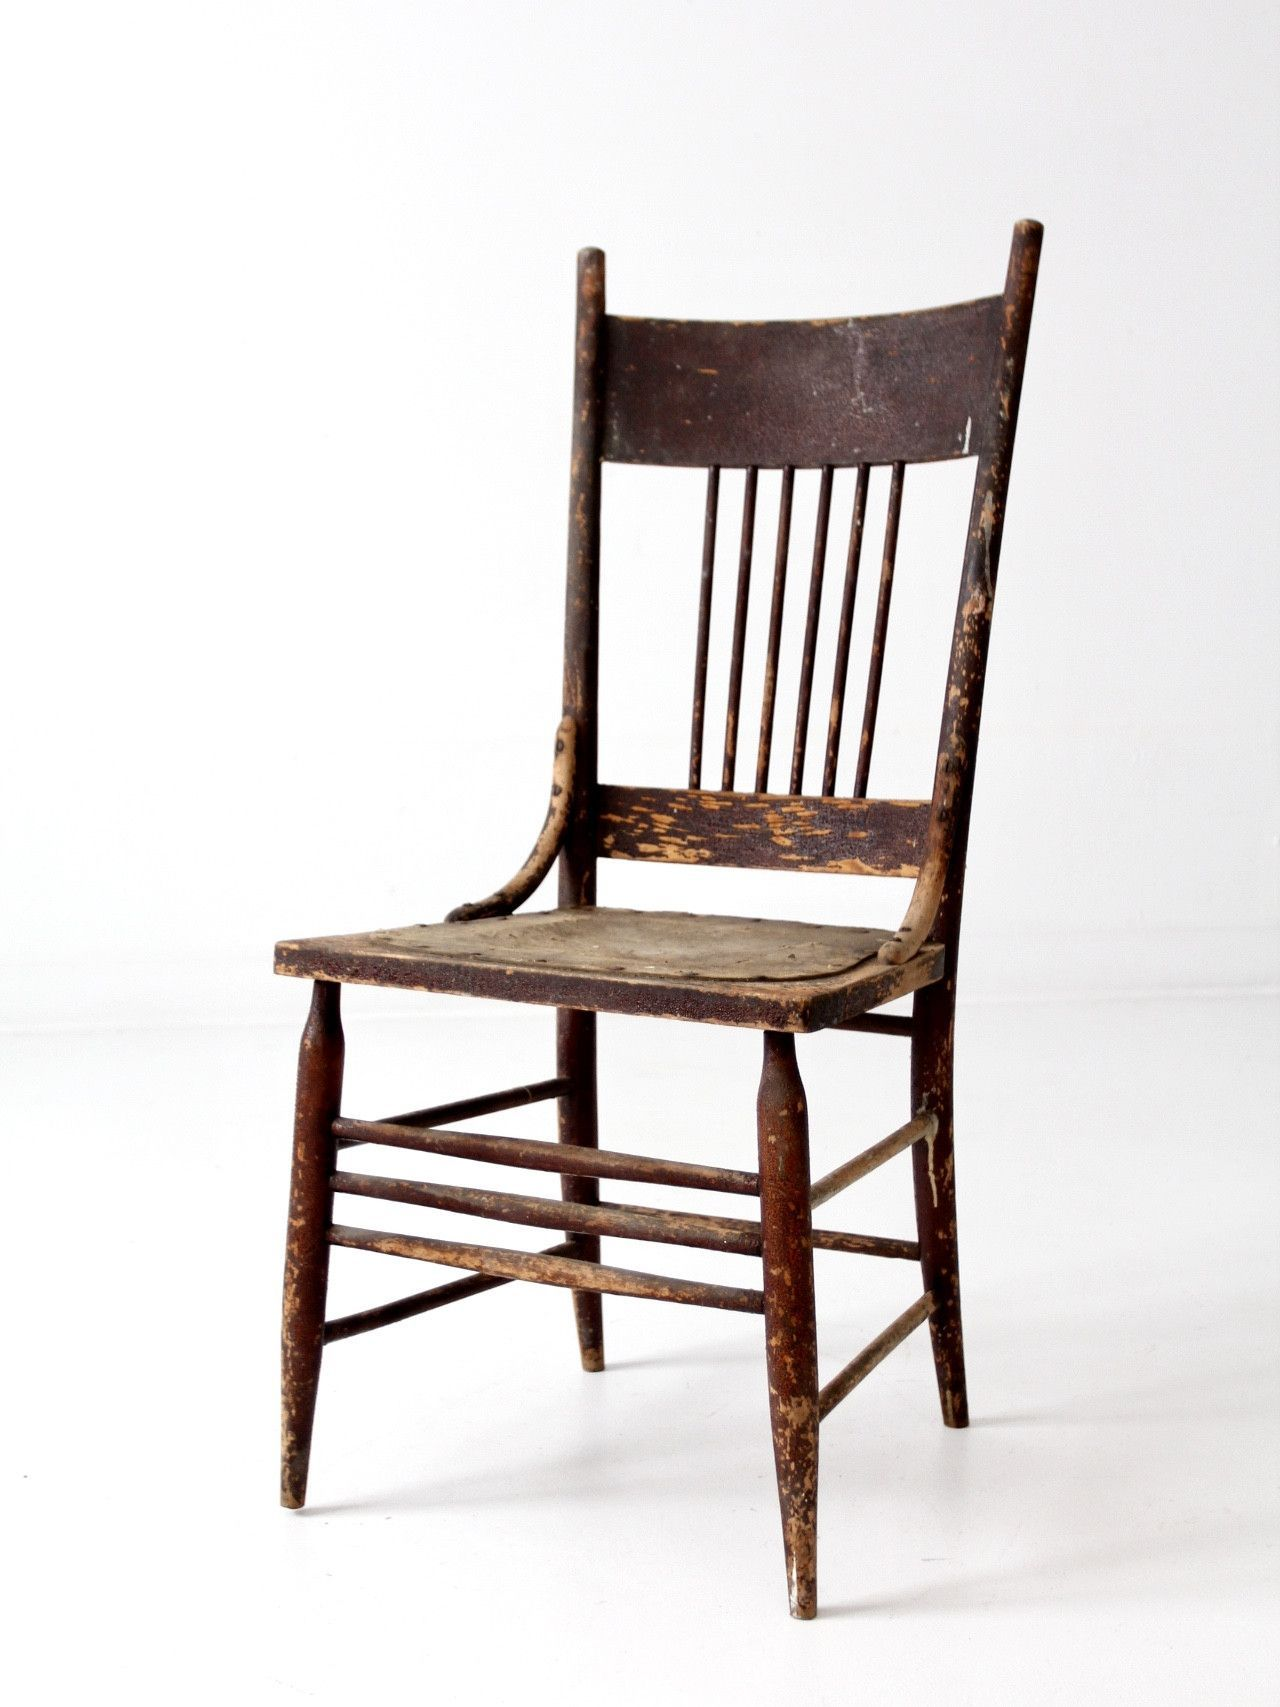 Antique Spindle Back Chair With Pressed Leather Seat